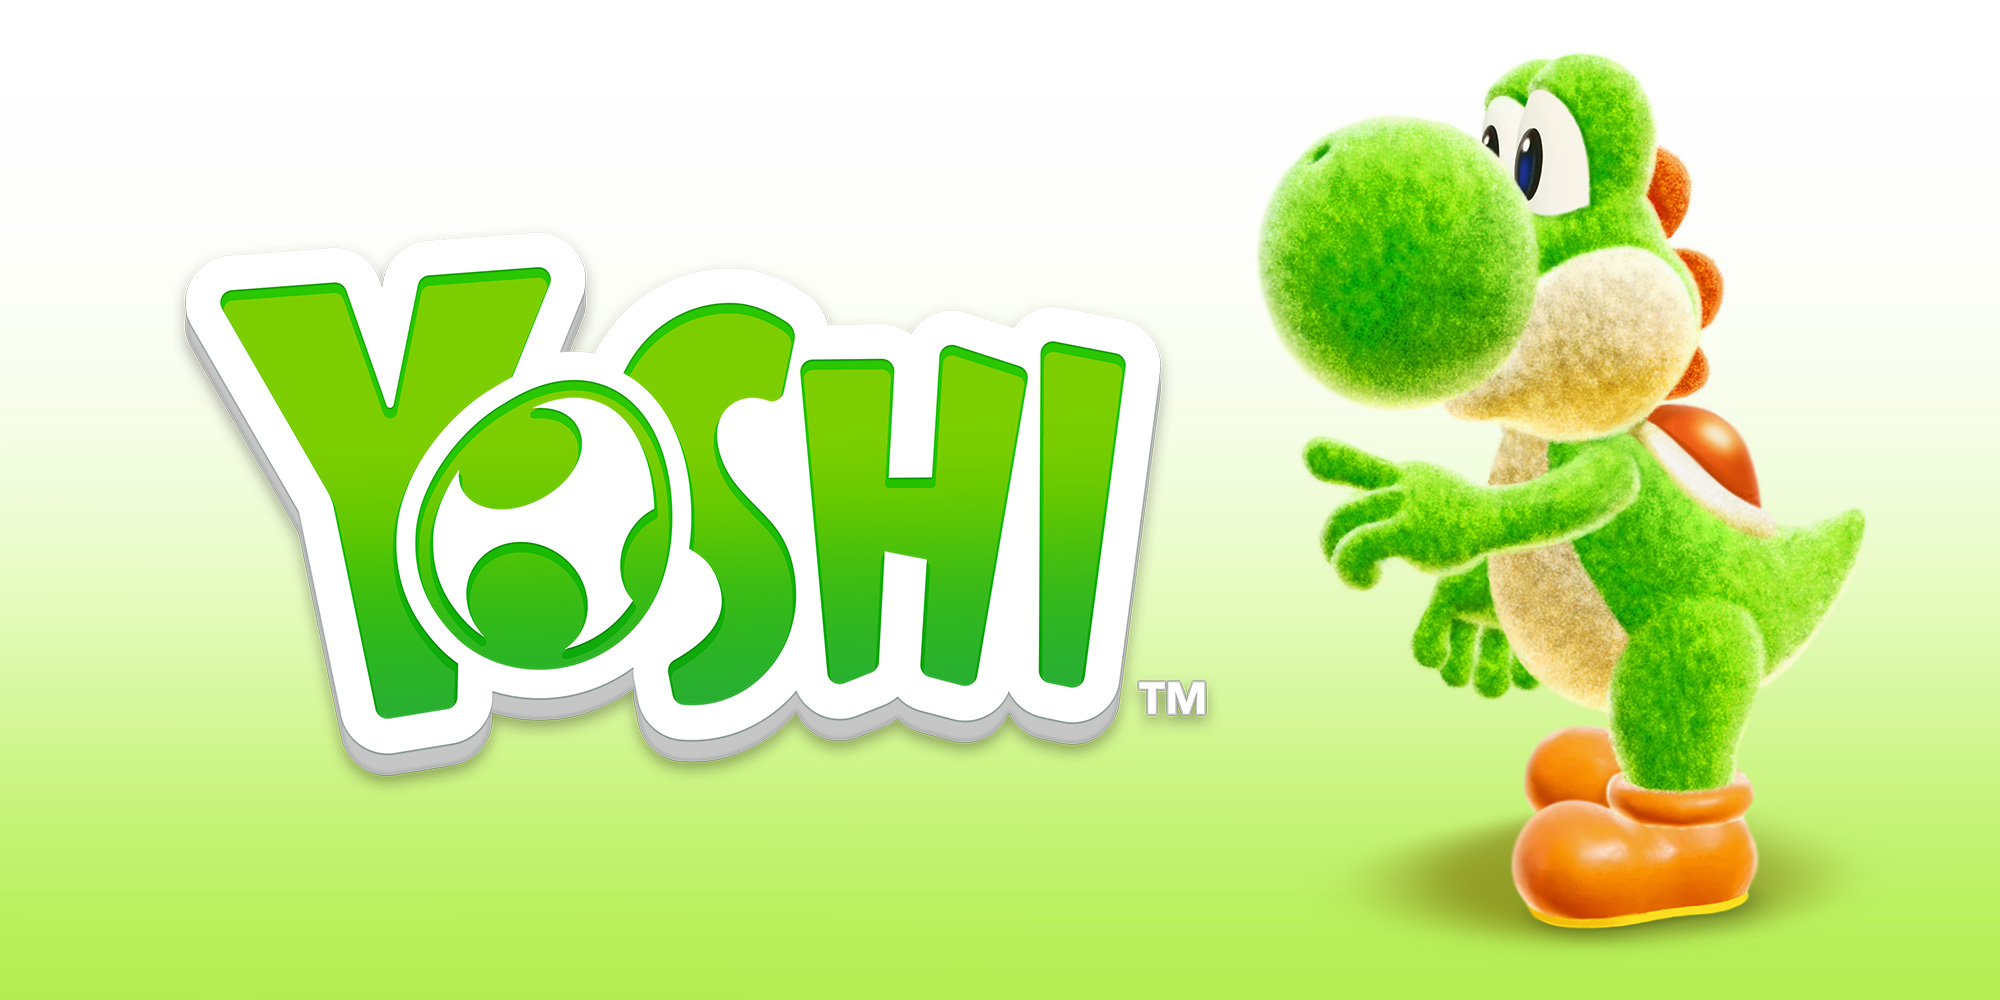 Yoshi's Crafted World/Galerie